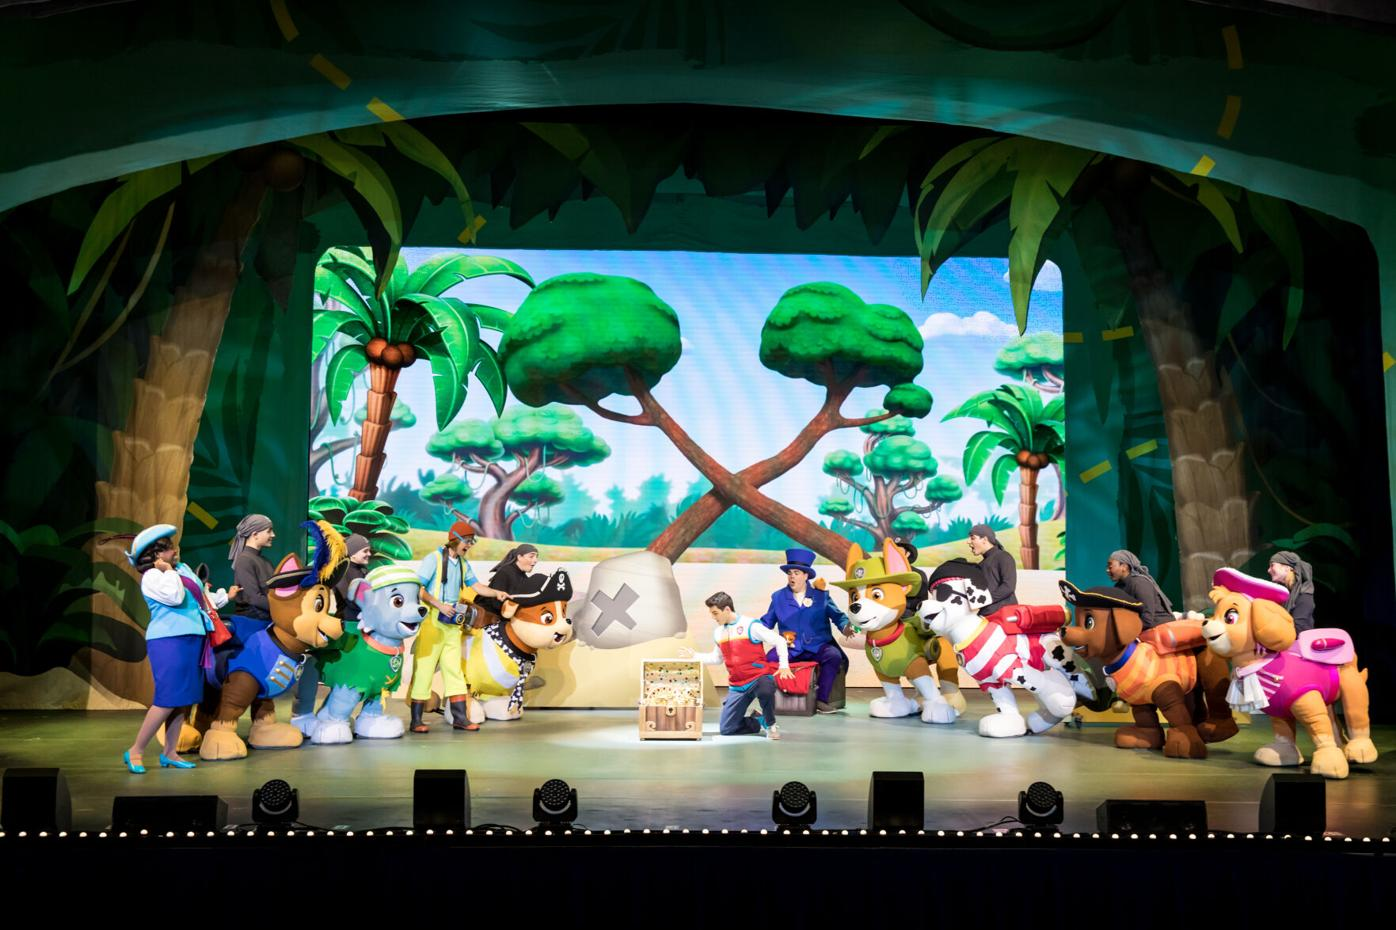 The PAW Patrol embark on a pirate-themed adventure to uncover hidden treasure